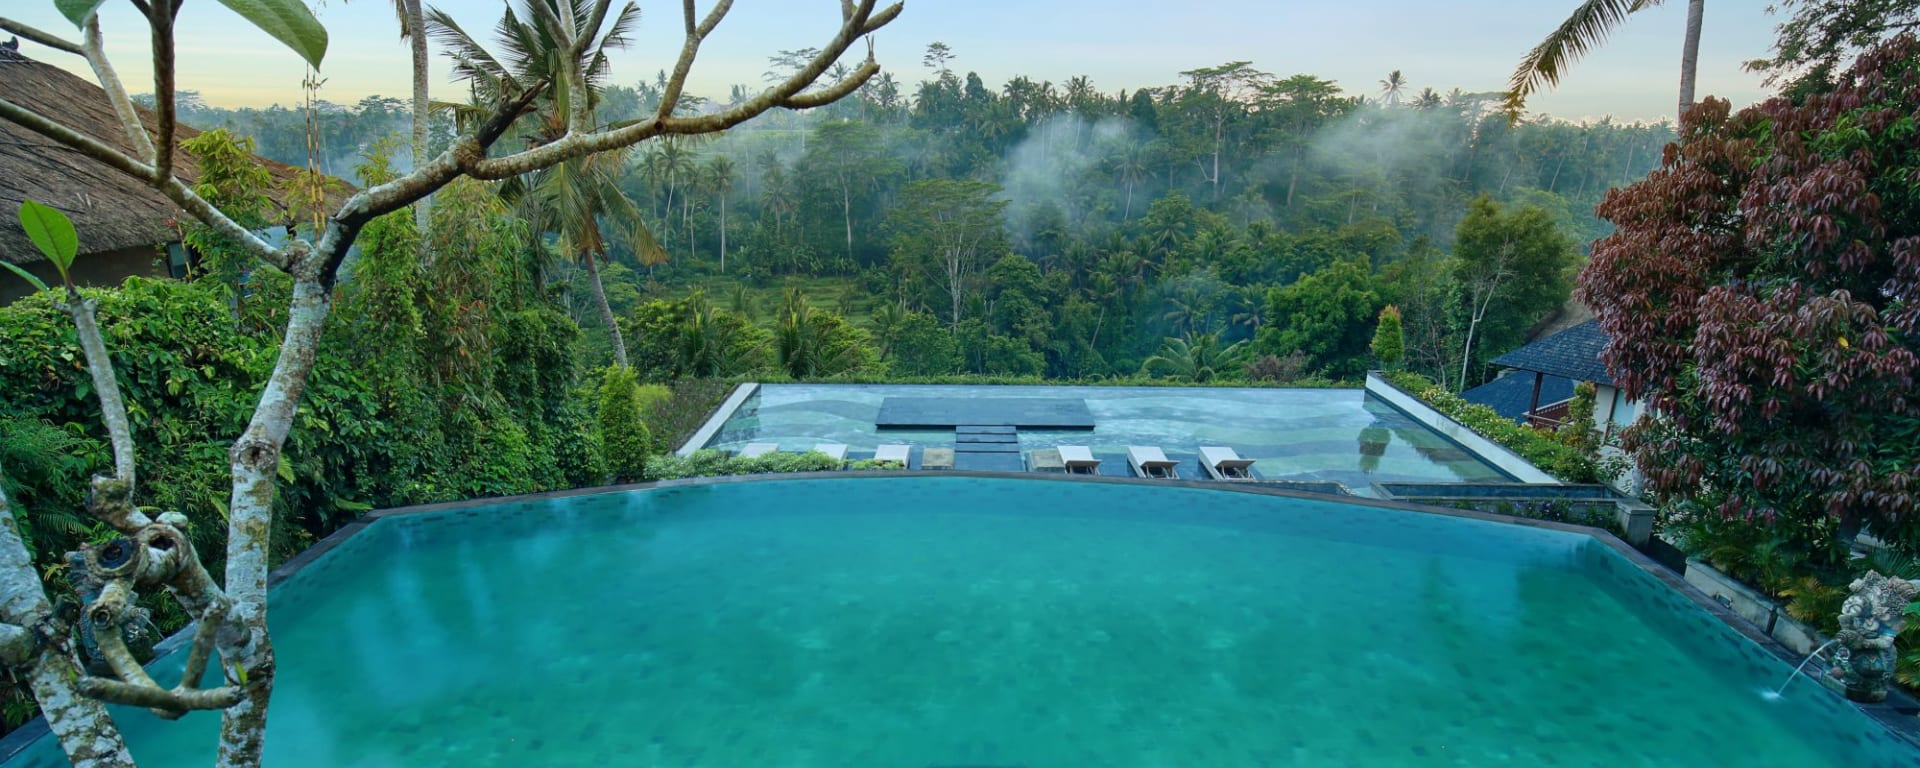 Jannata Resort & Spa in Ubud: Jannata